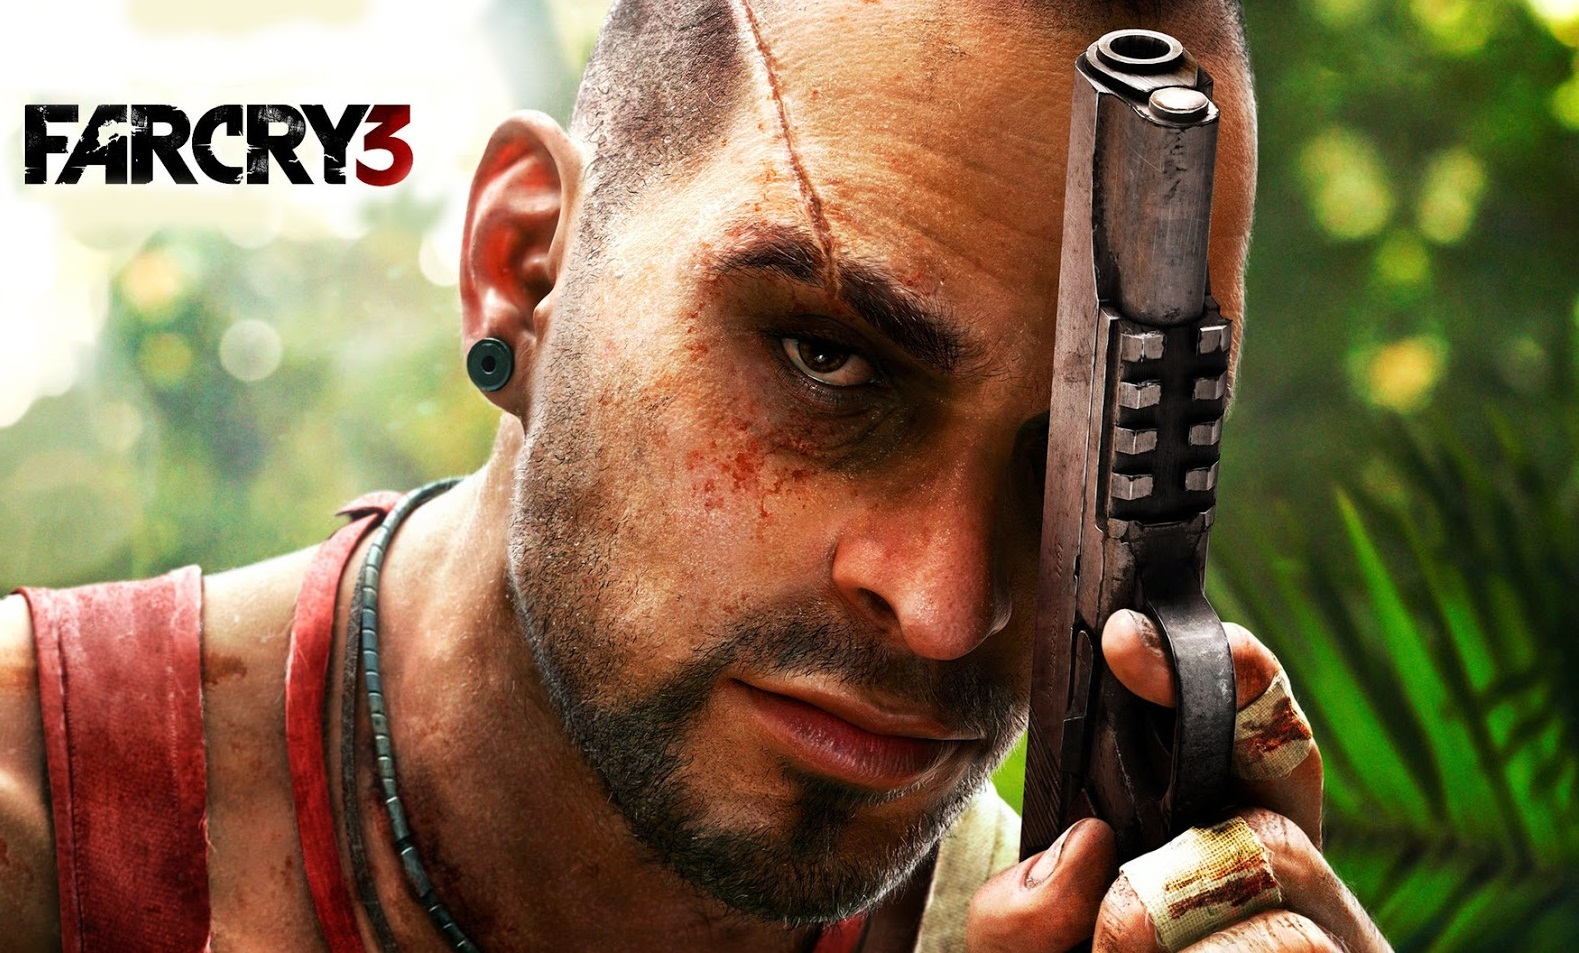 FarCry 3 Download PC Game Full Version ~ Download PC Games